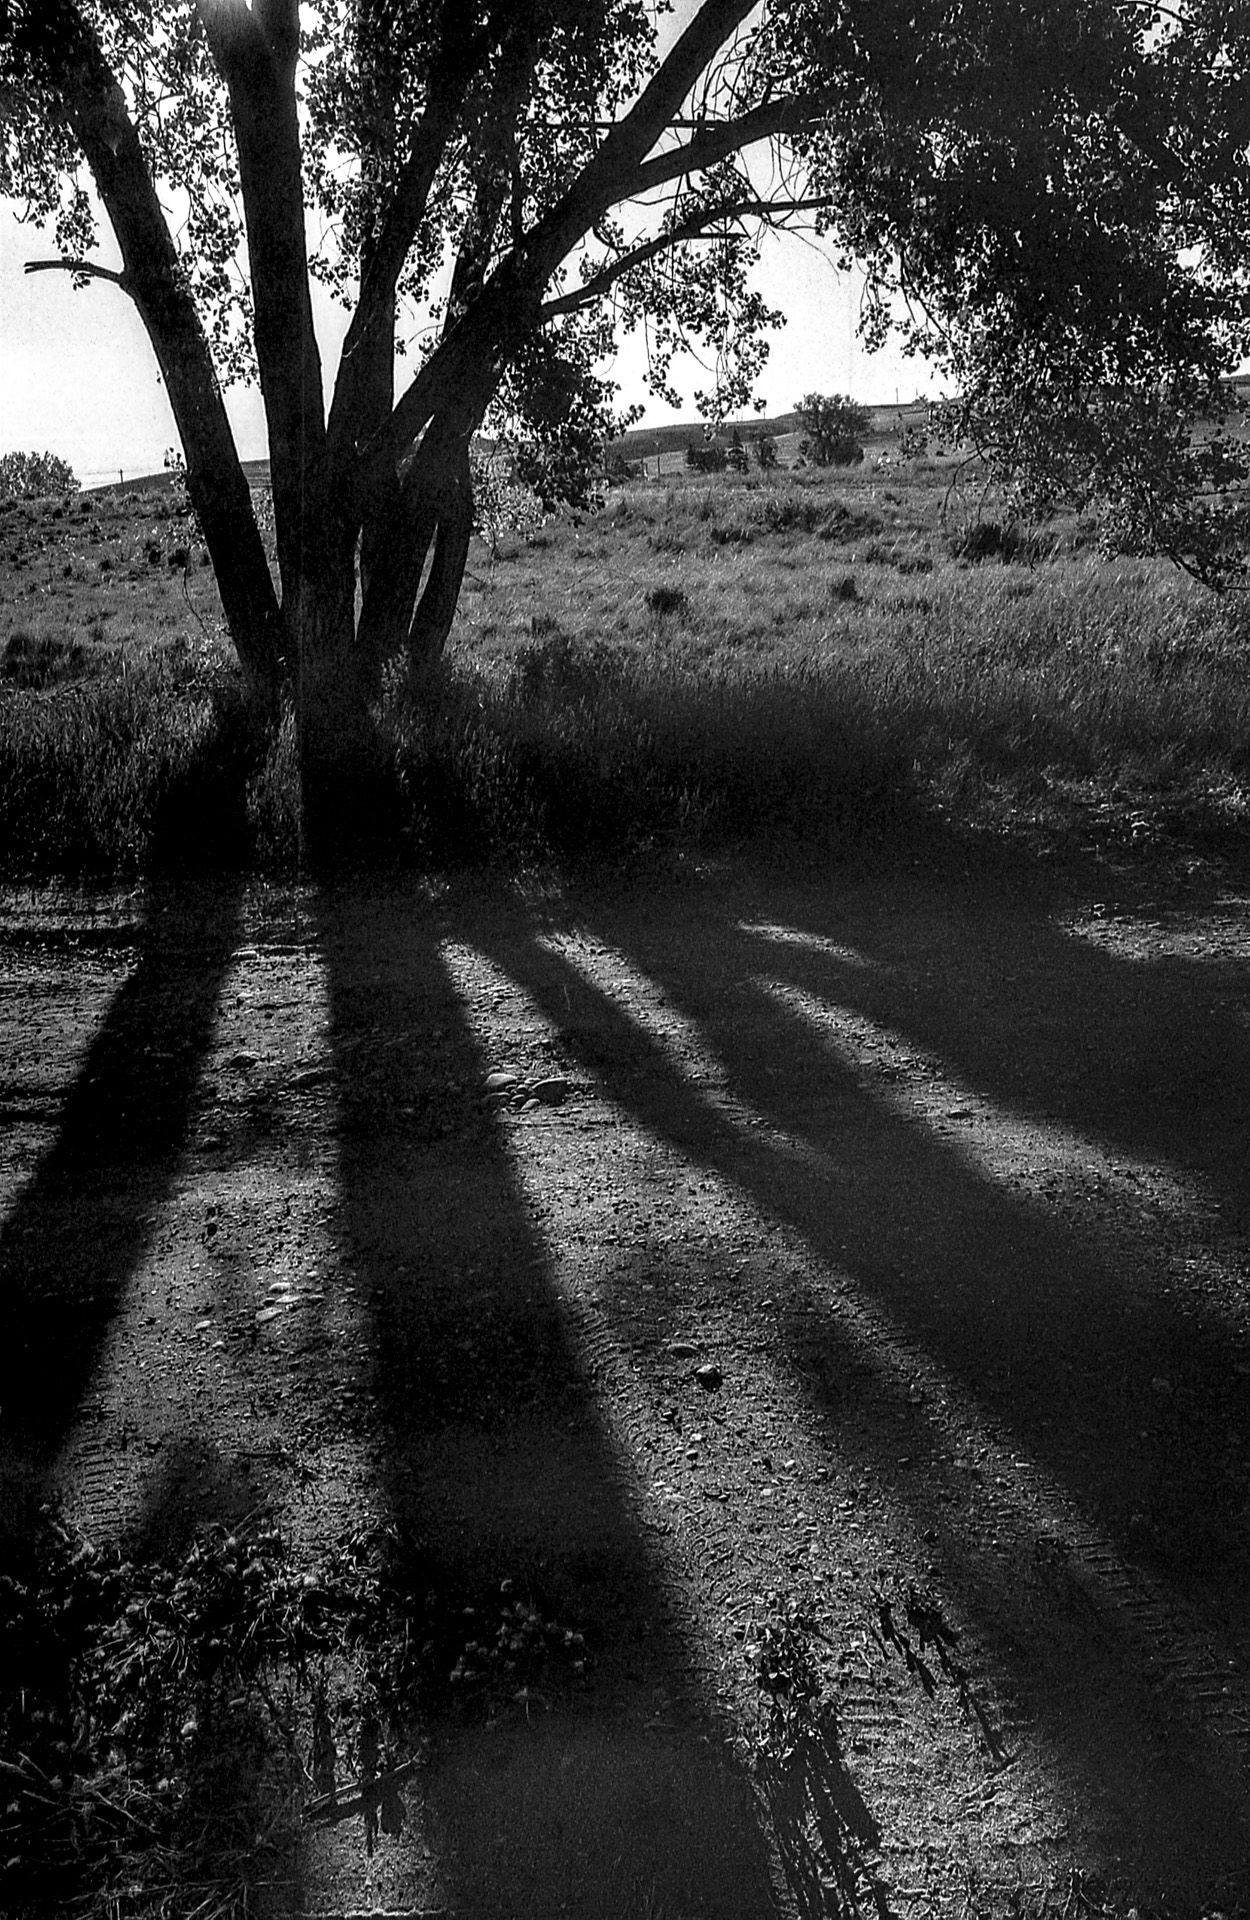 Shadows dust ii 135 film photography black white blair boyd photography blairboyd com